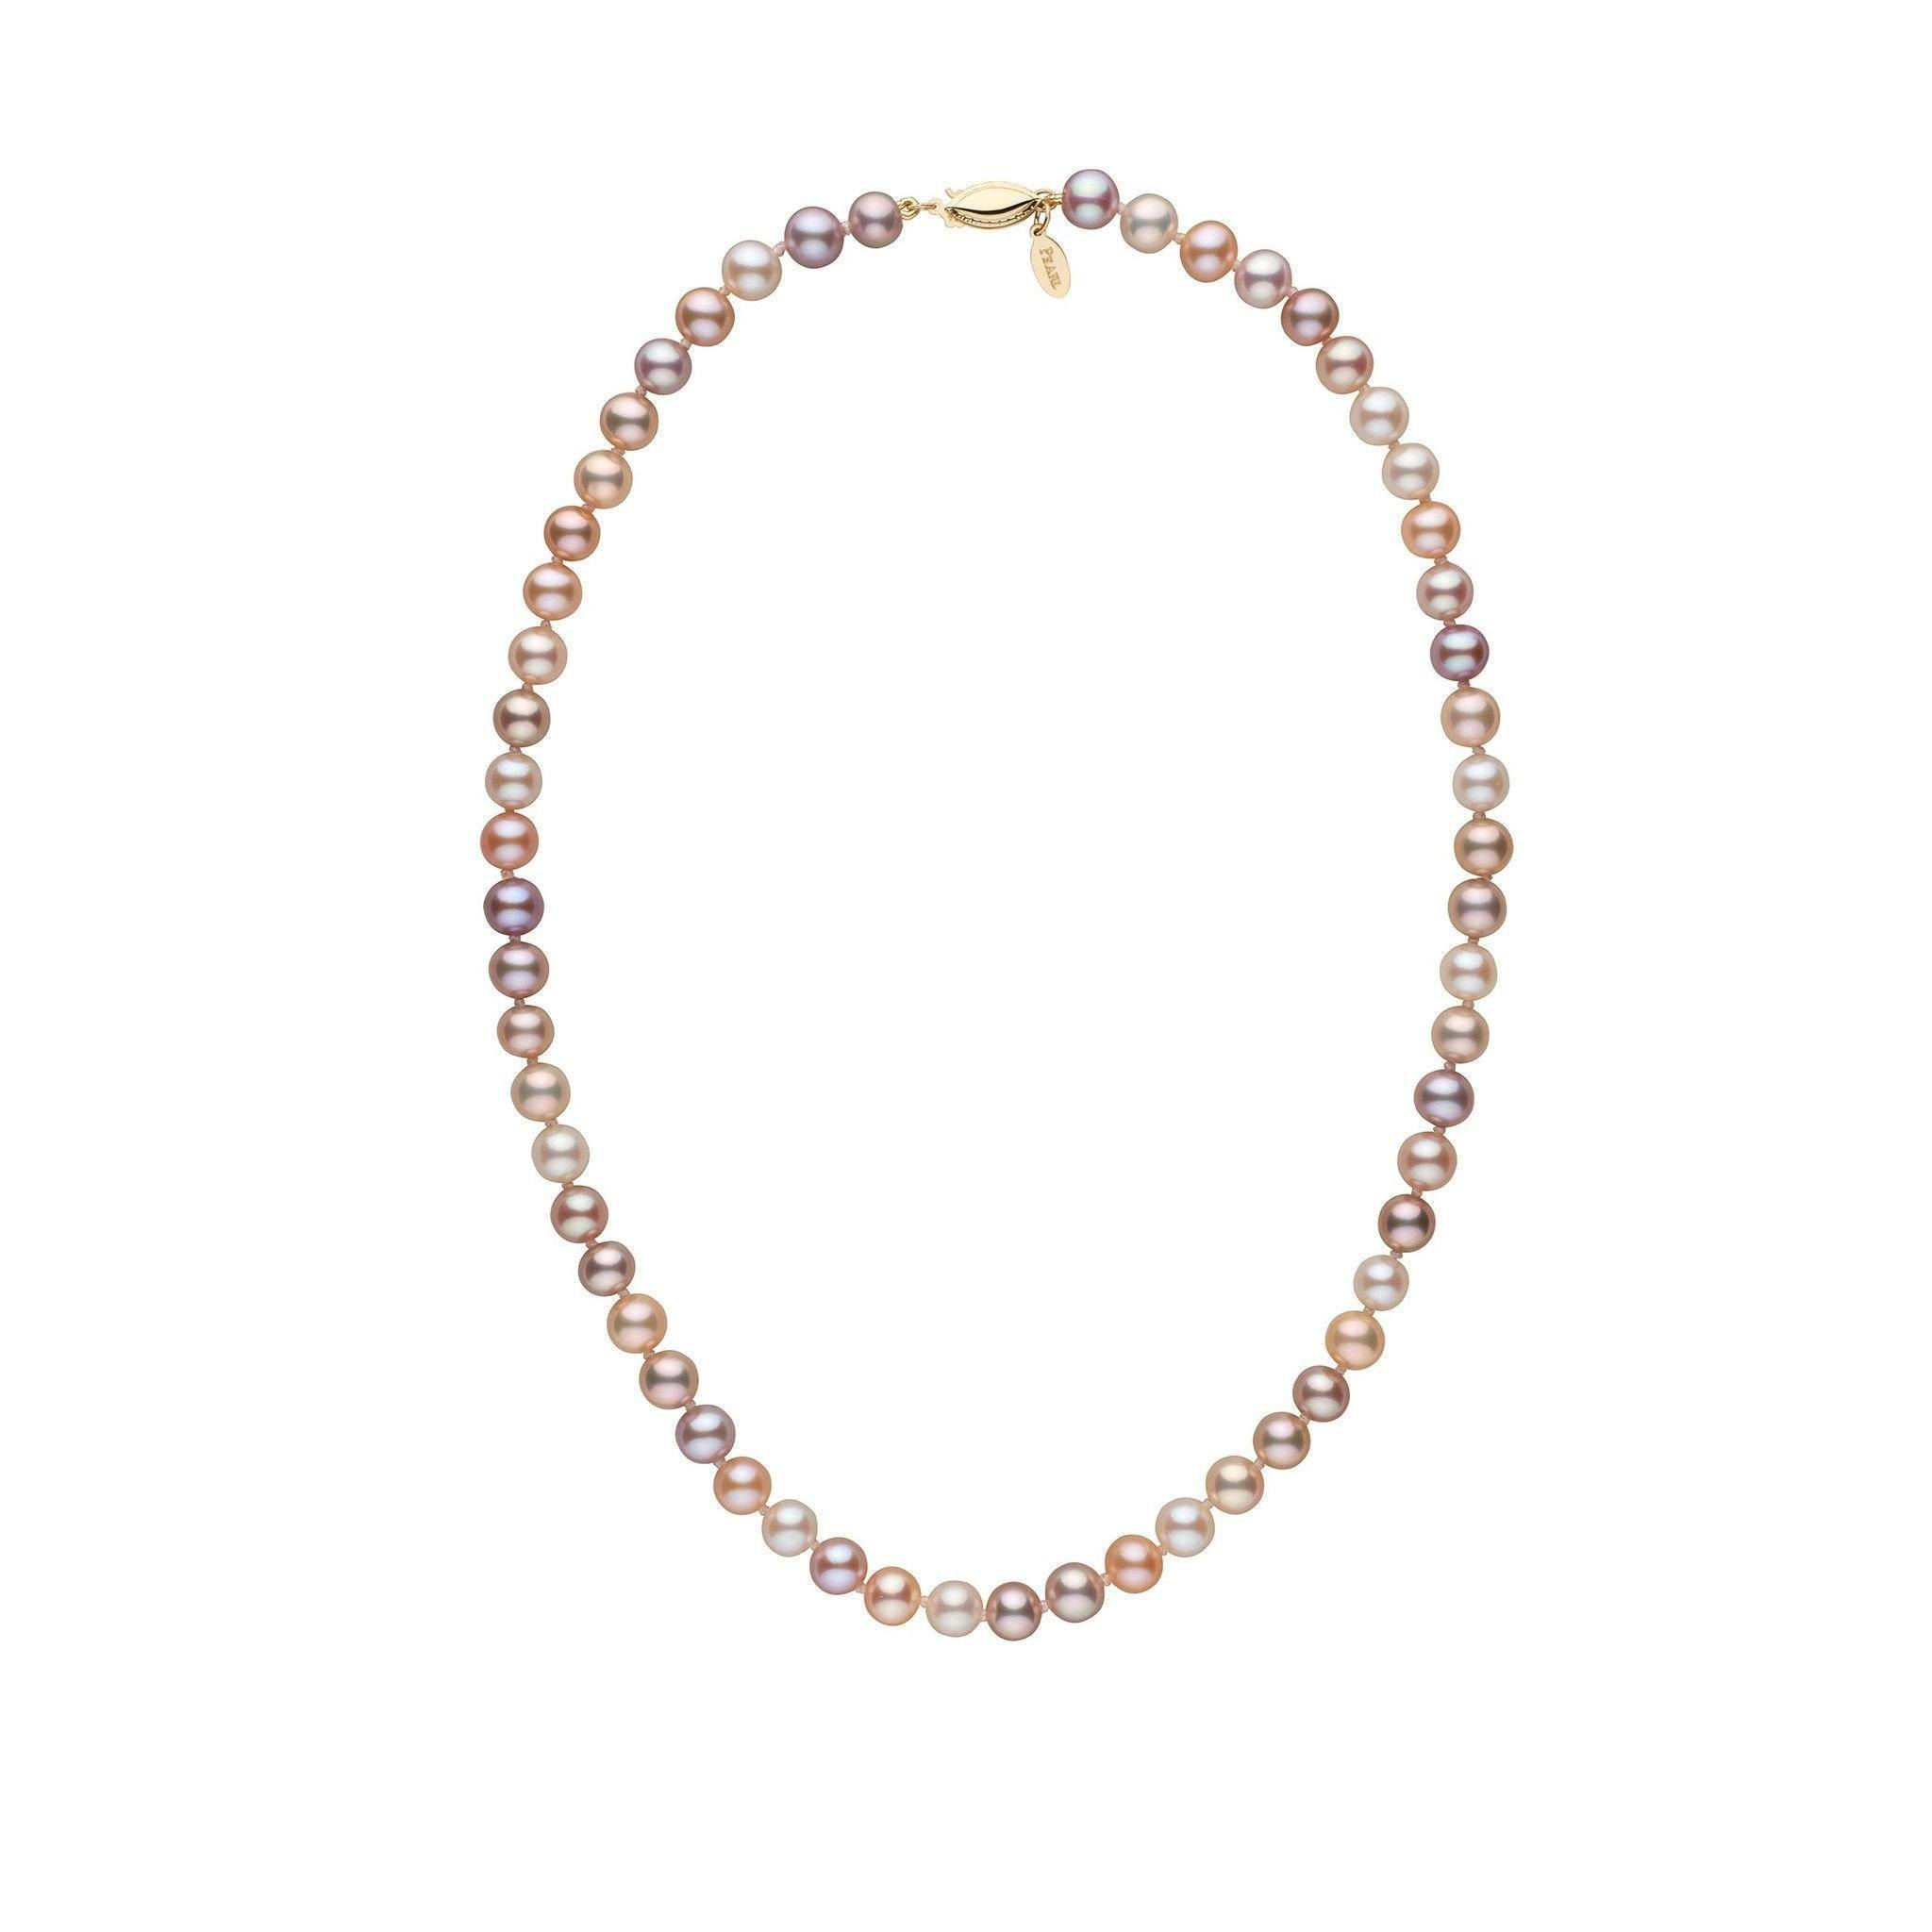 6.5-7.0 mm 16 Inch Multicolor Freshadama Freshwater Pearl Necklace